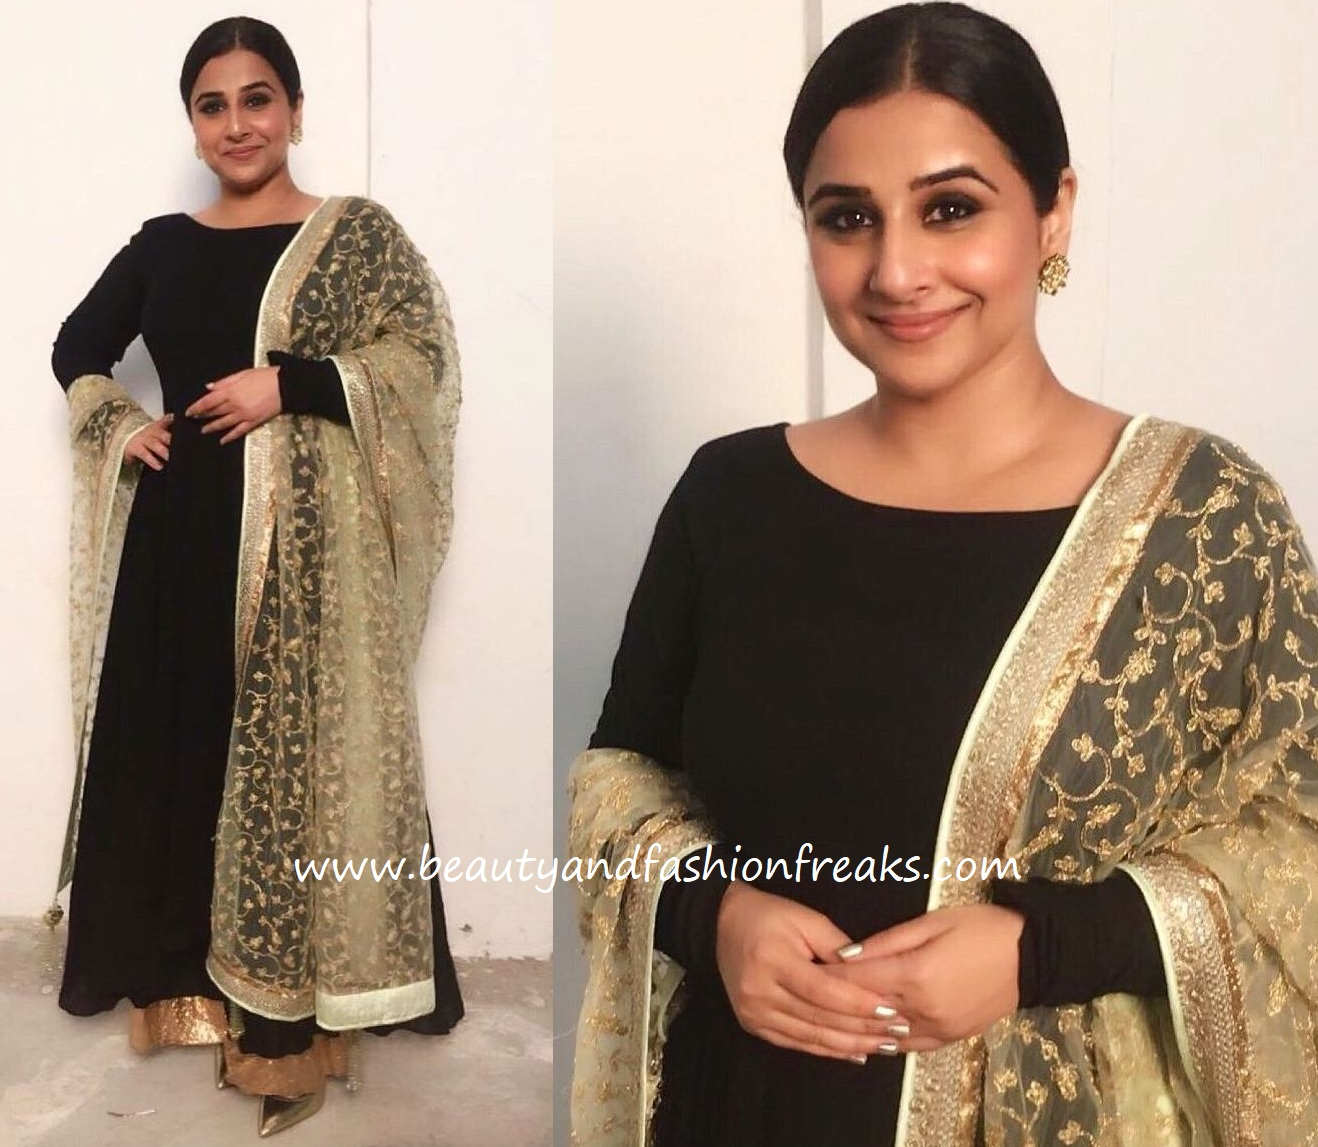 Vidya Balan In Vikram Phadnis At Power Brand Awards 2018